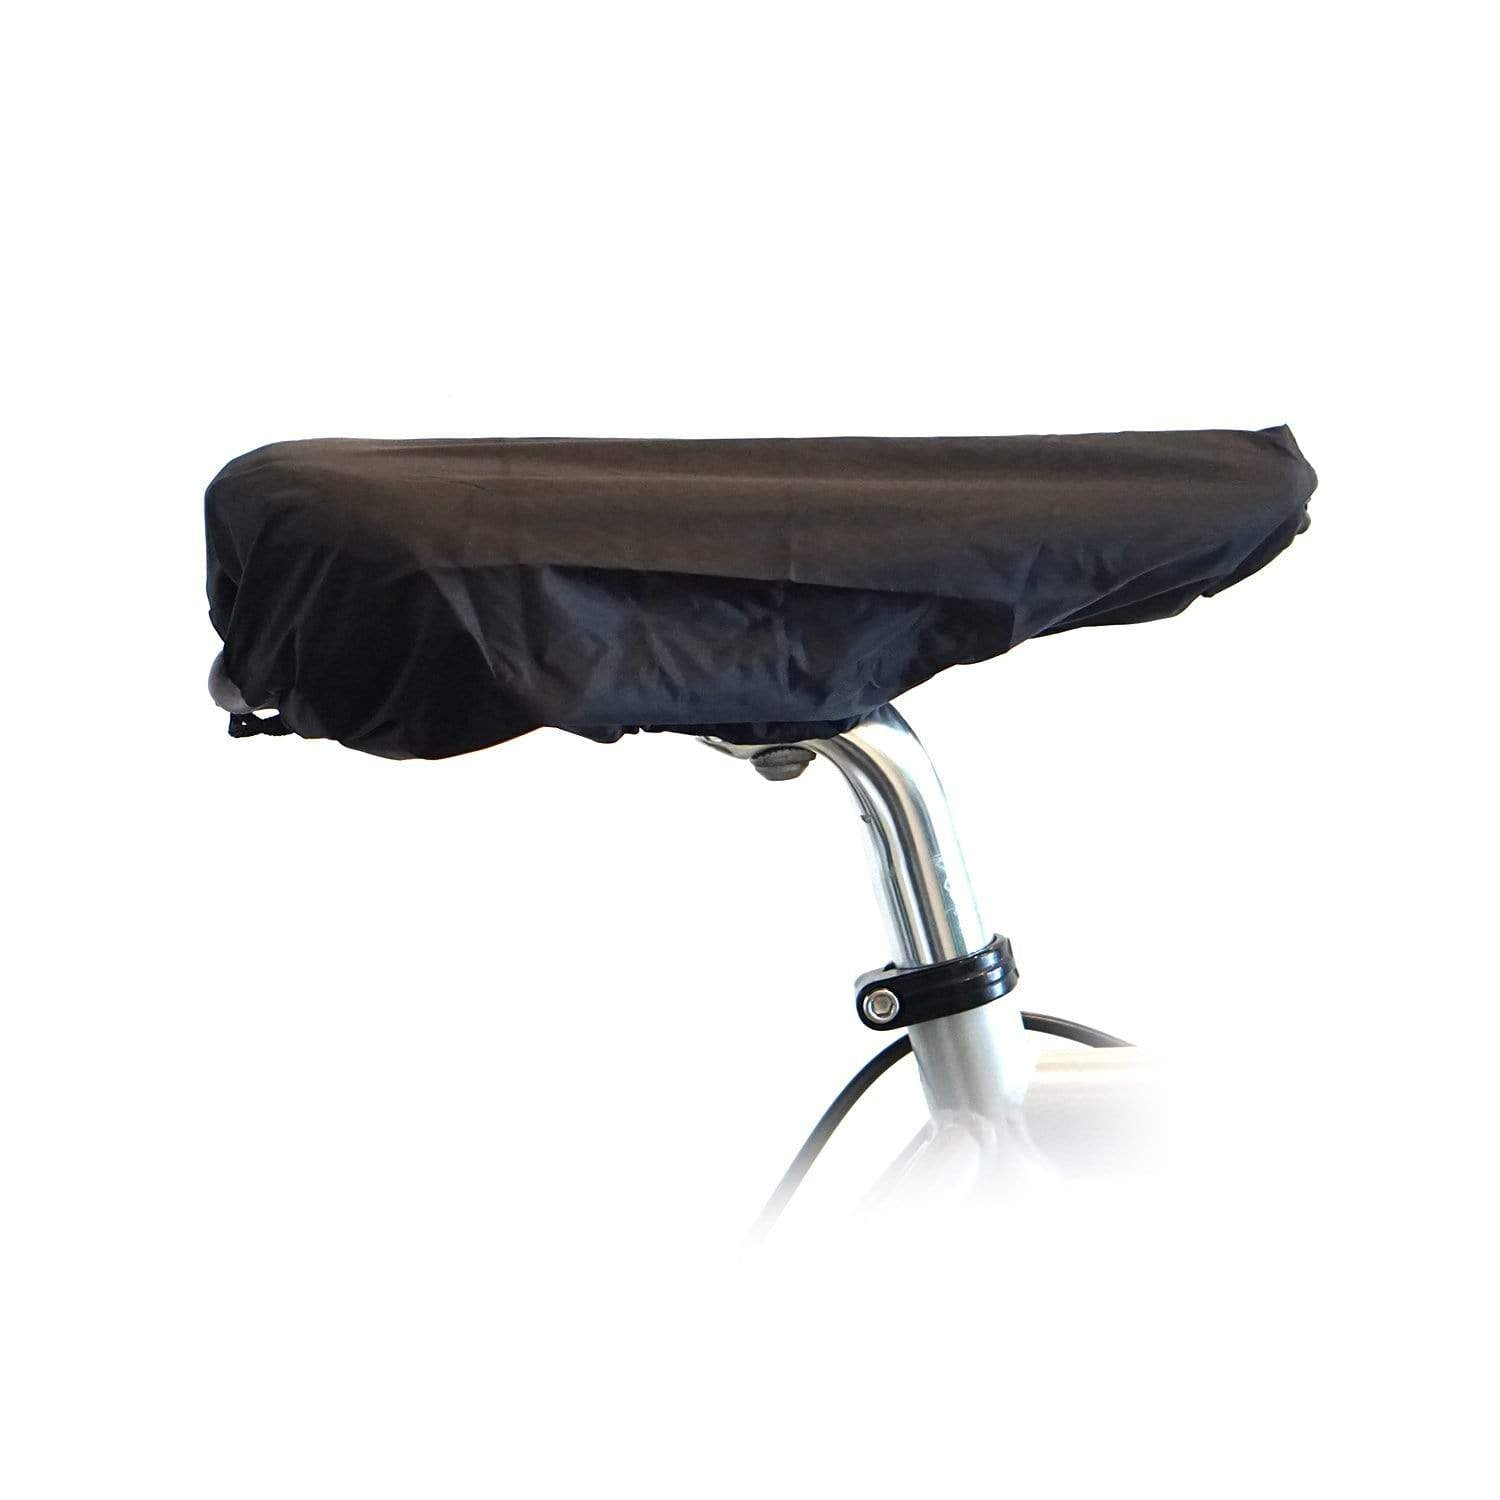 Vincita Co., Ltd. Bike cover Black Foldable rain cover for bike saddle